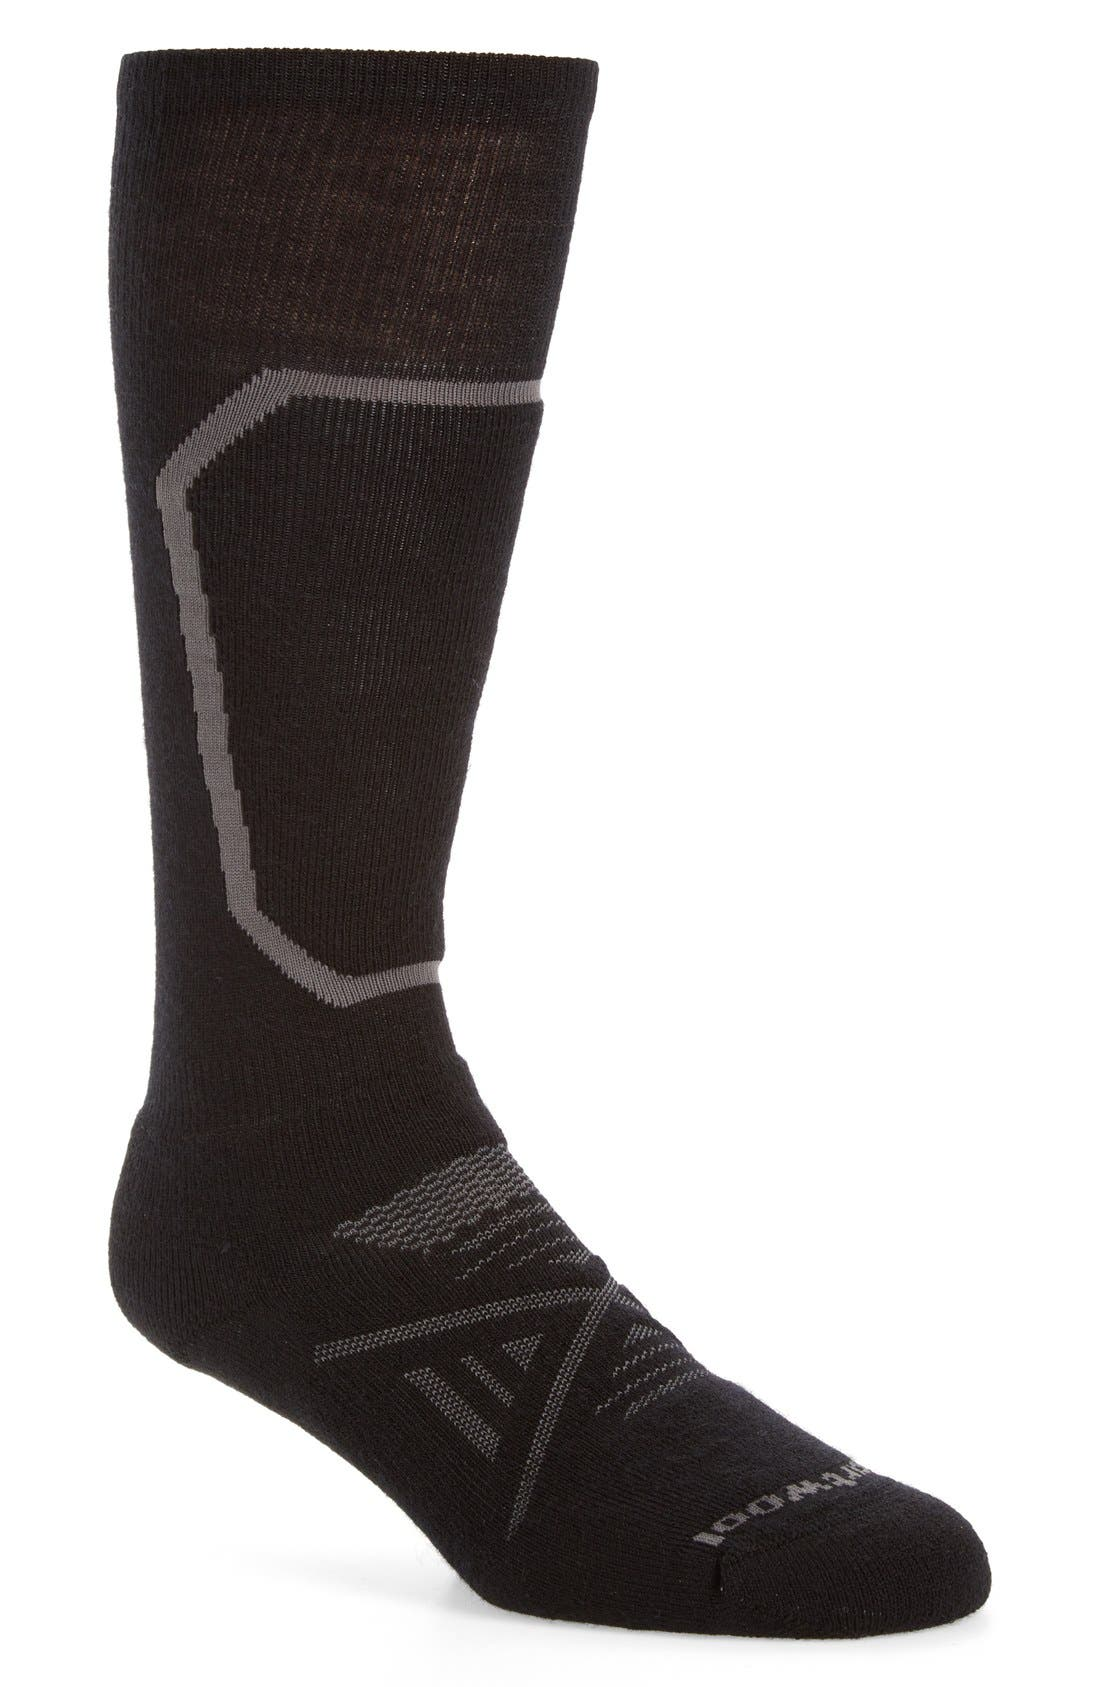 Smartwool PhD® Ski Medium Over the Calf Socks